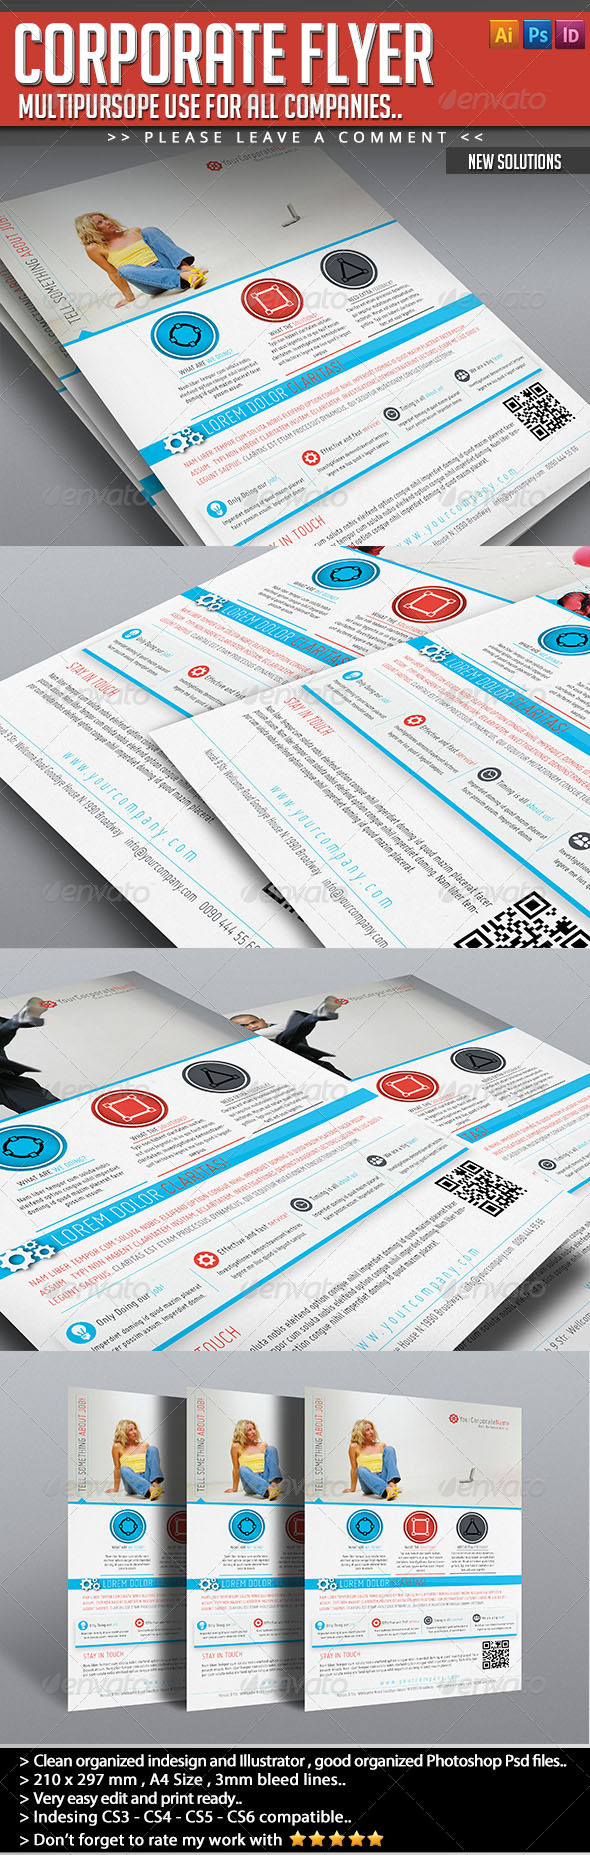 Corporate Flyer - New Solutions - Corporate Flyers